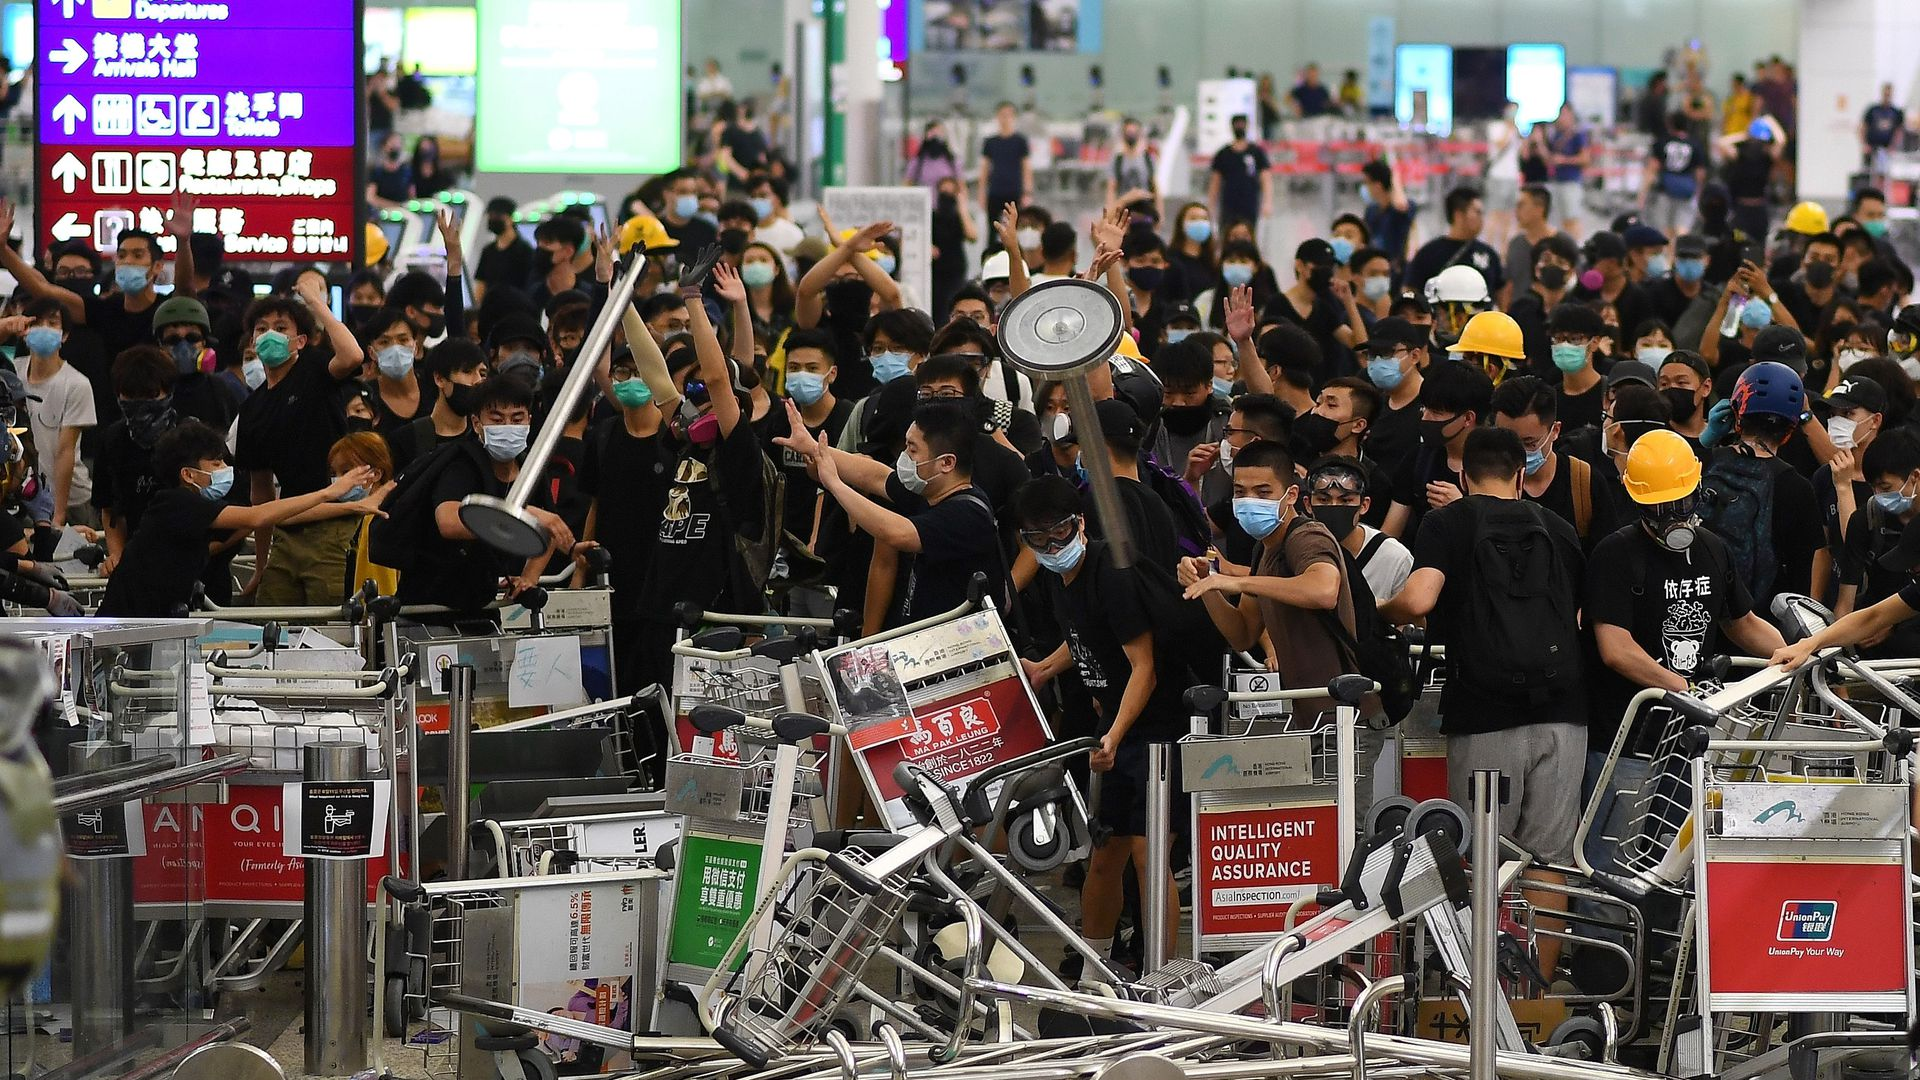 Protestors at Hong Kong airport